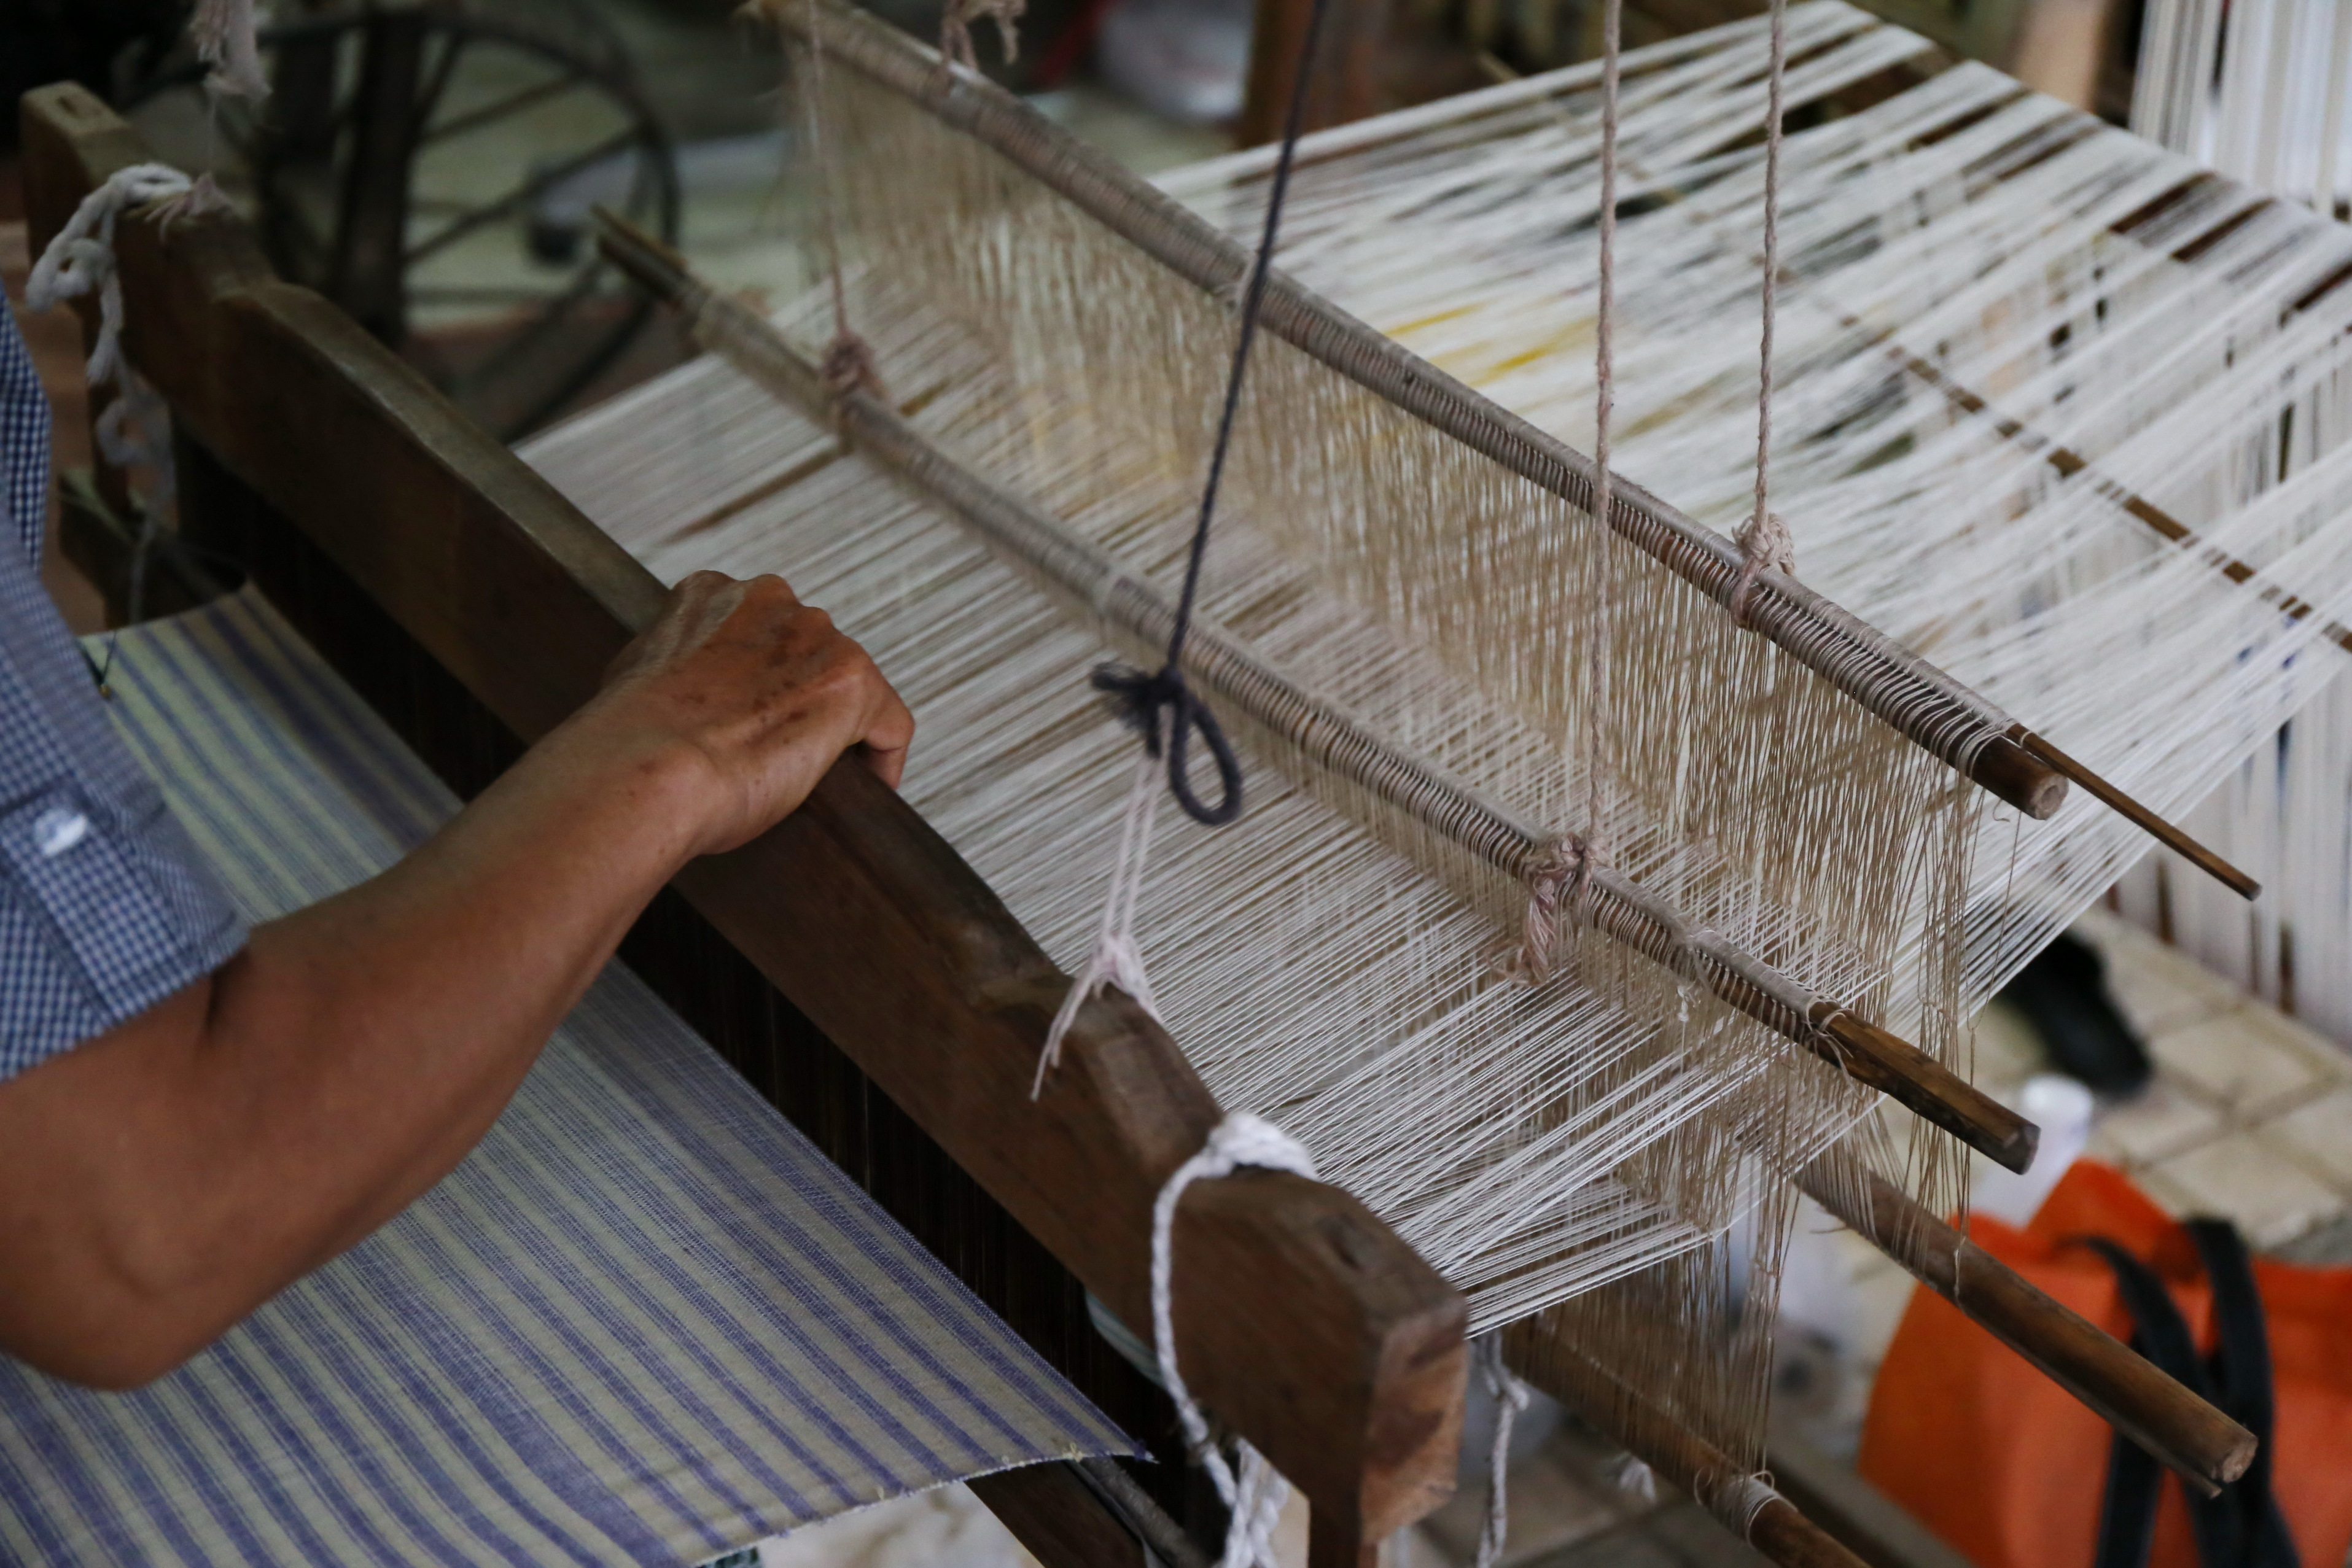 The Cambodian government has increased the monthly wage in the textile and apparel industry to $170 monthly.